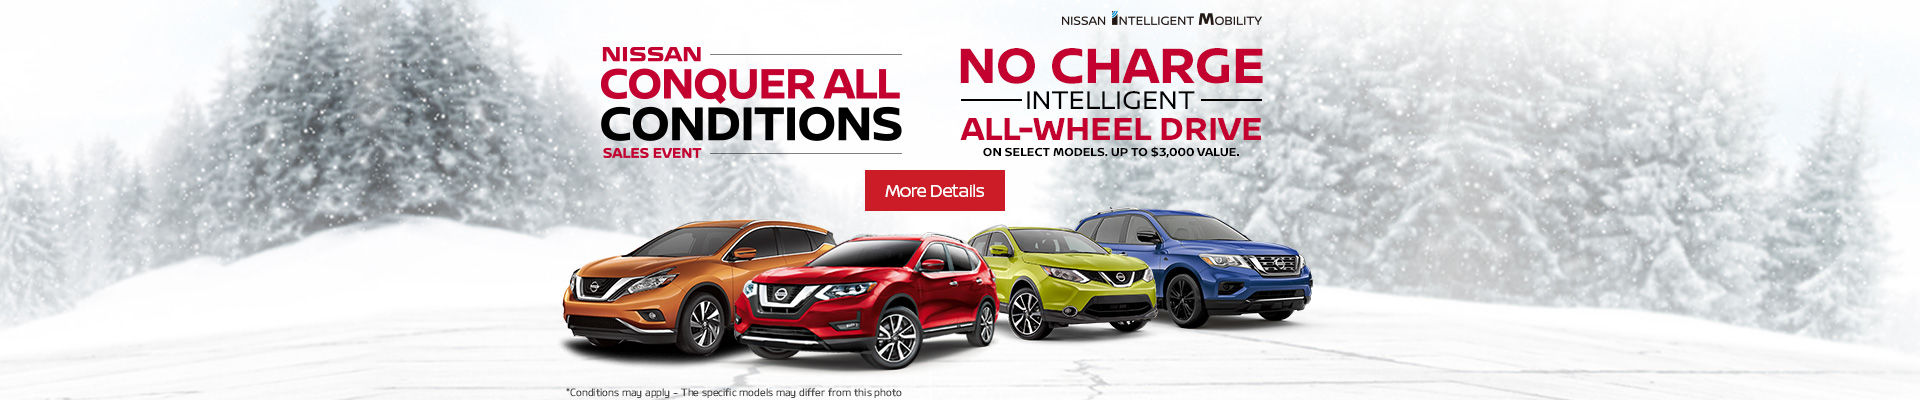 Nissan Conquer all Conditions - Web